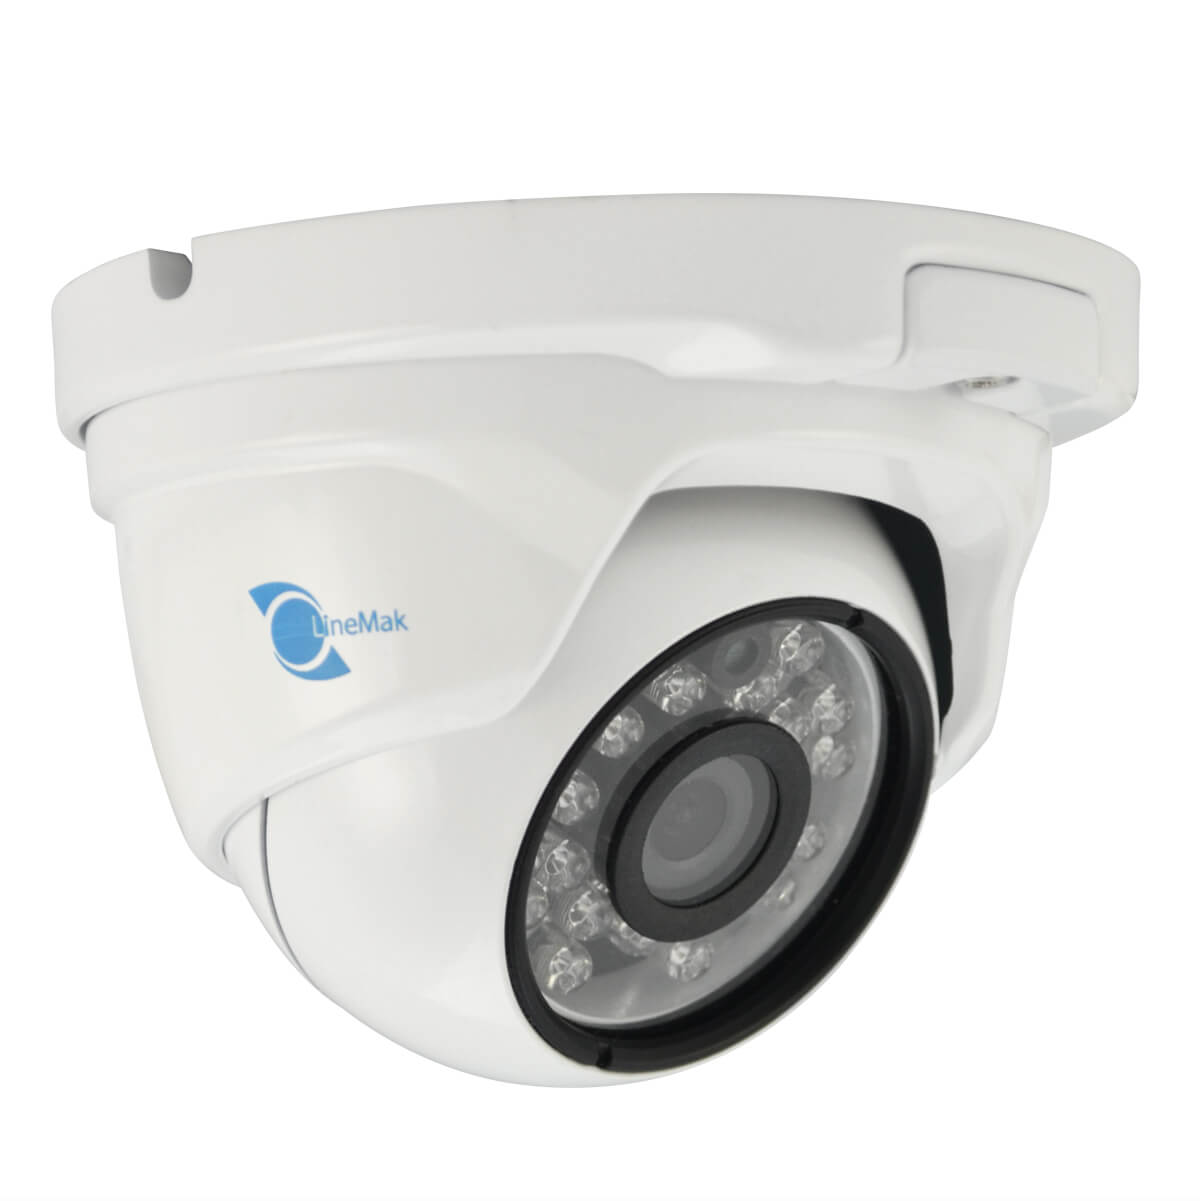 Dome camera, 1/2.8 HDIS CMOS Sensor, 1200TVL, 3.6mm lens, 24 LED, 65ft